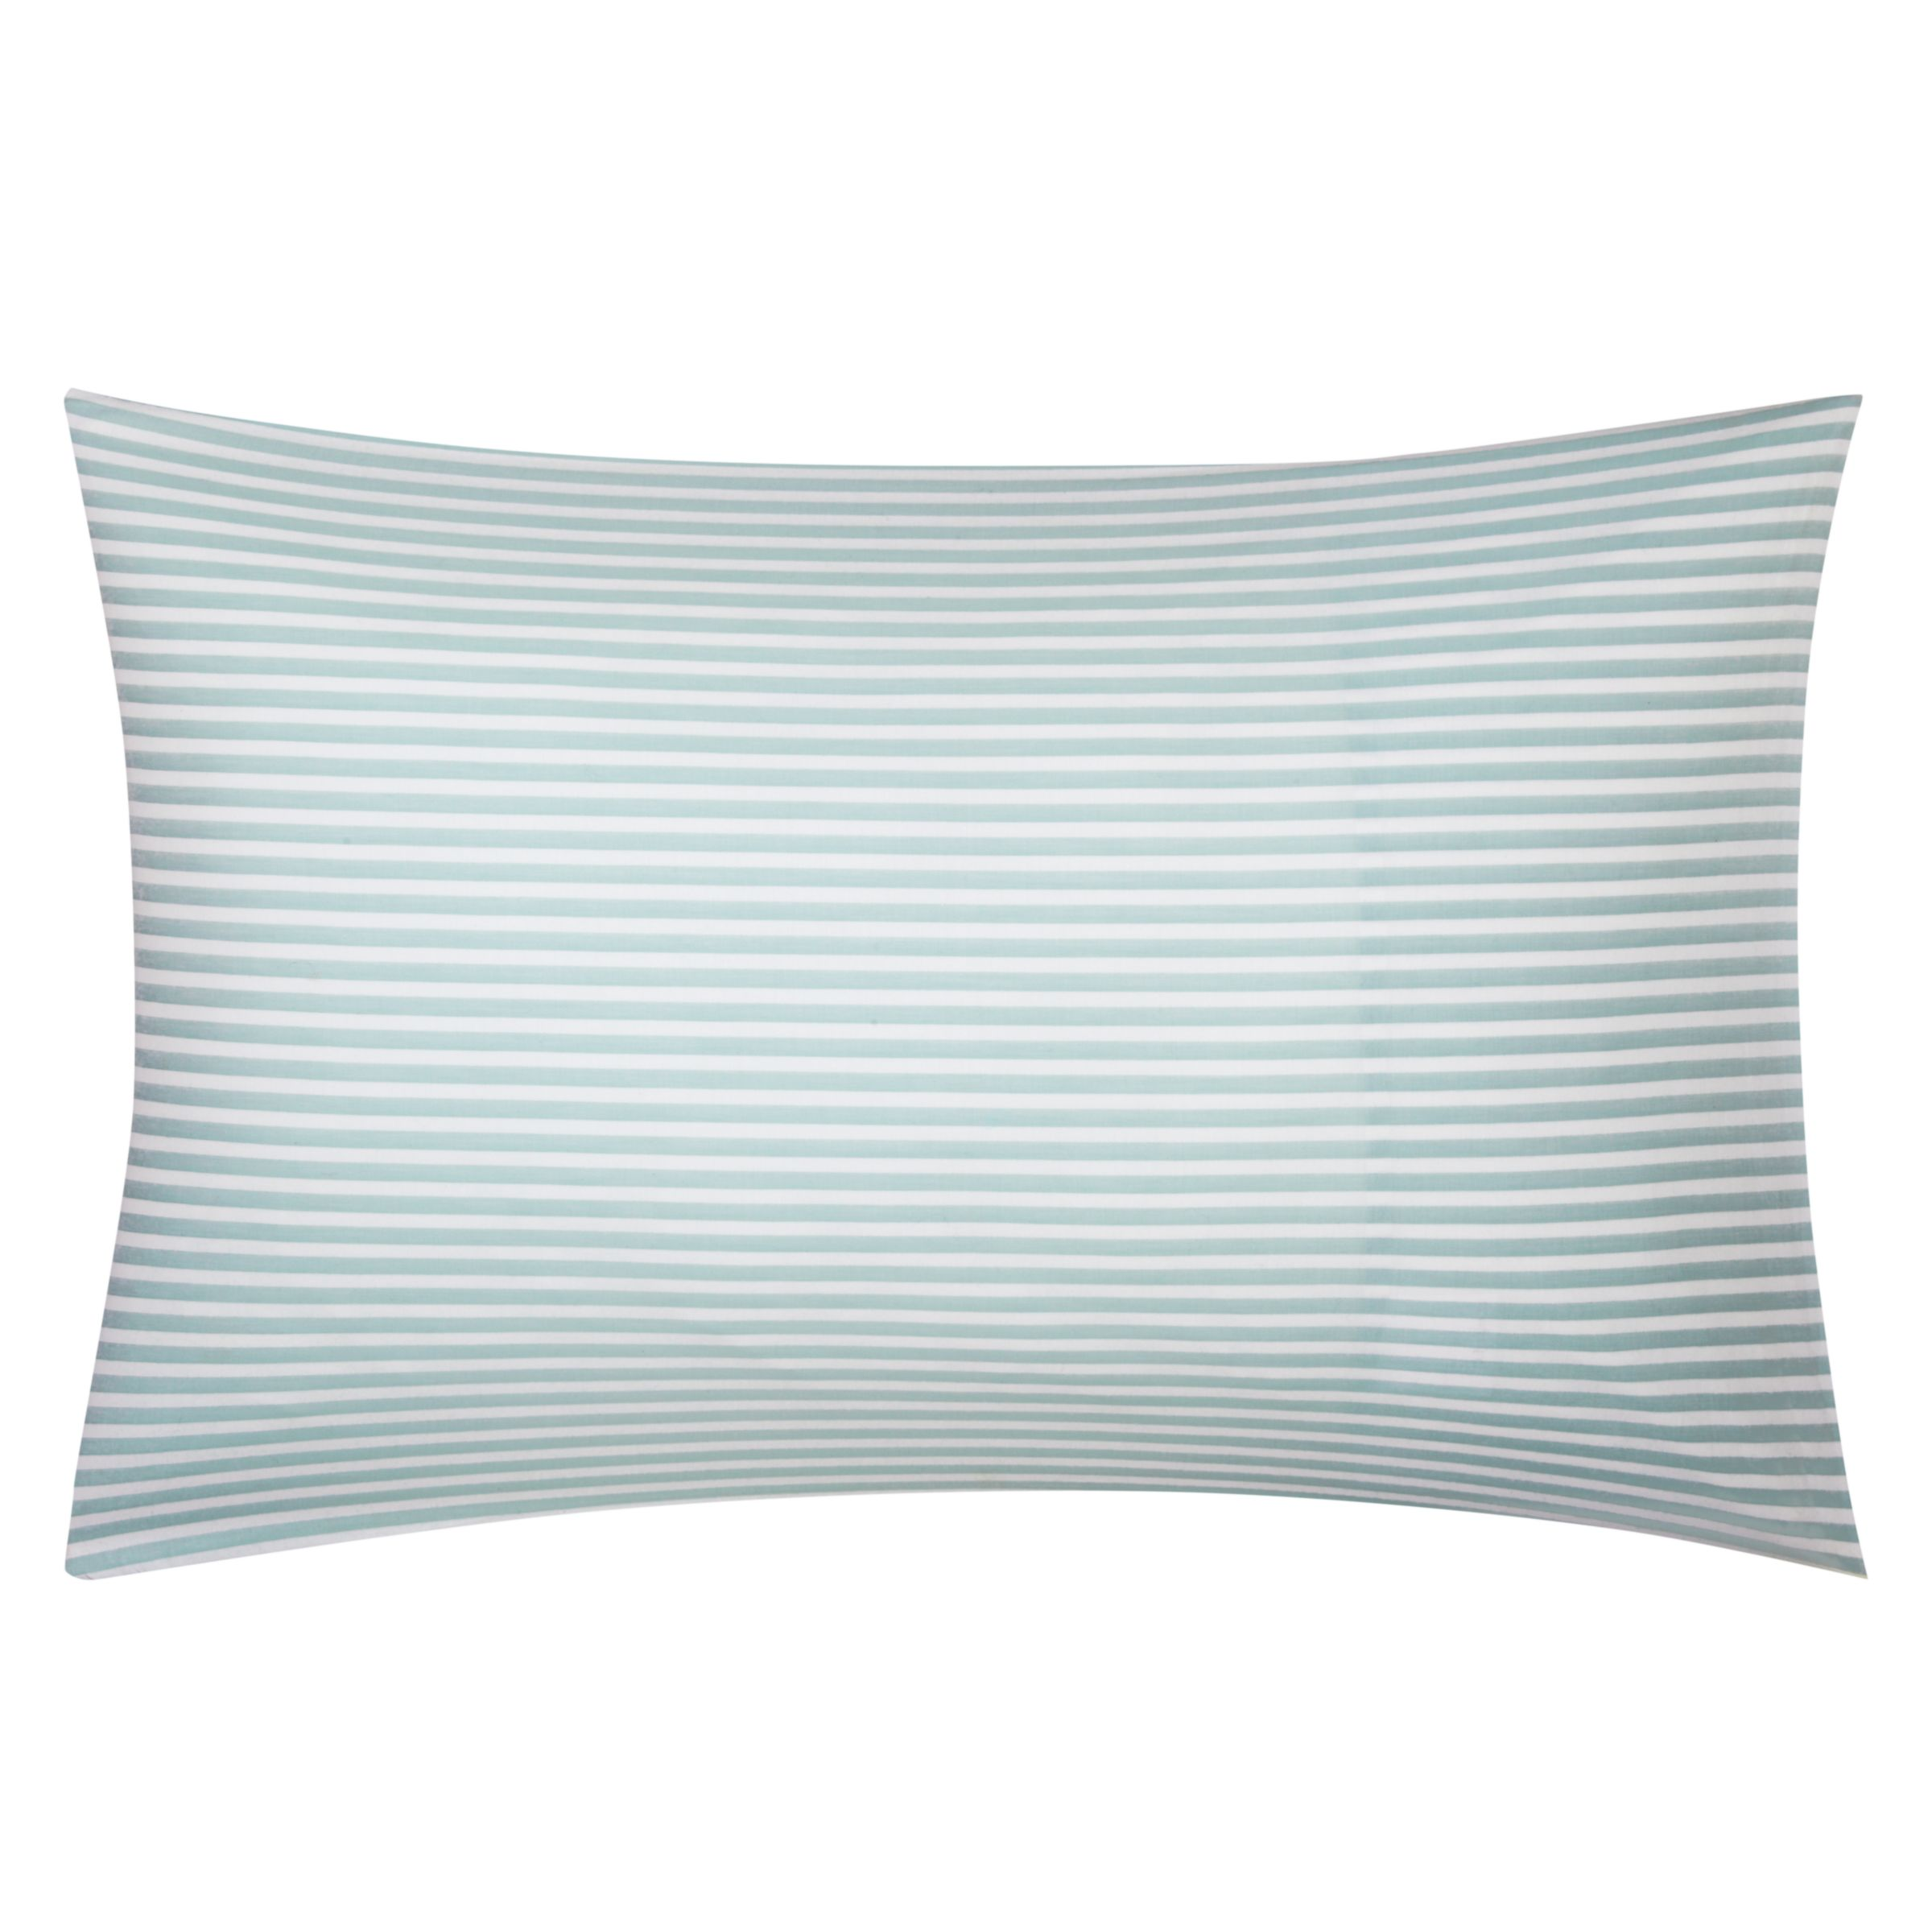 Tempur Traditional Pillow John Lewis : han pillow